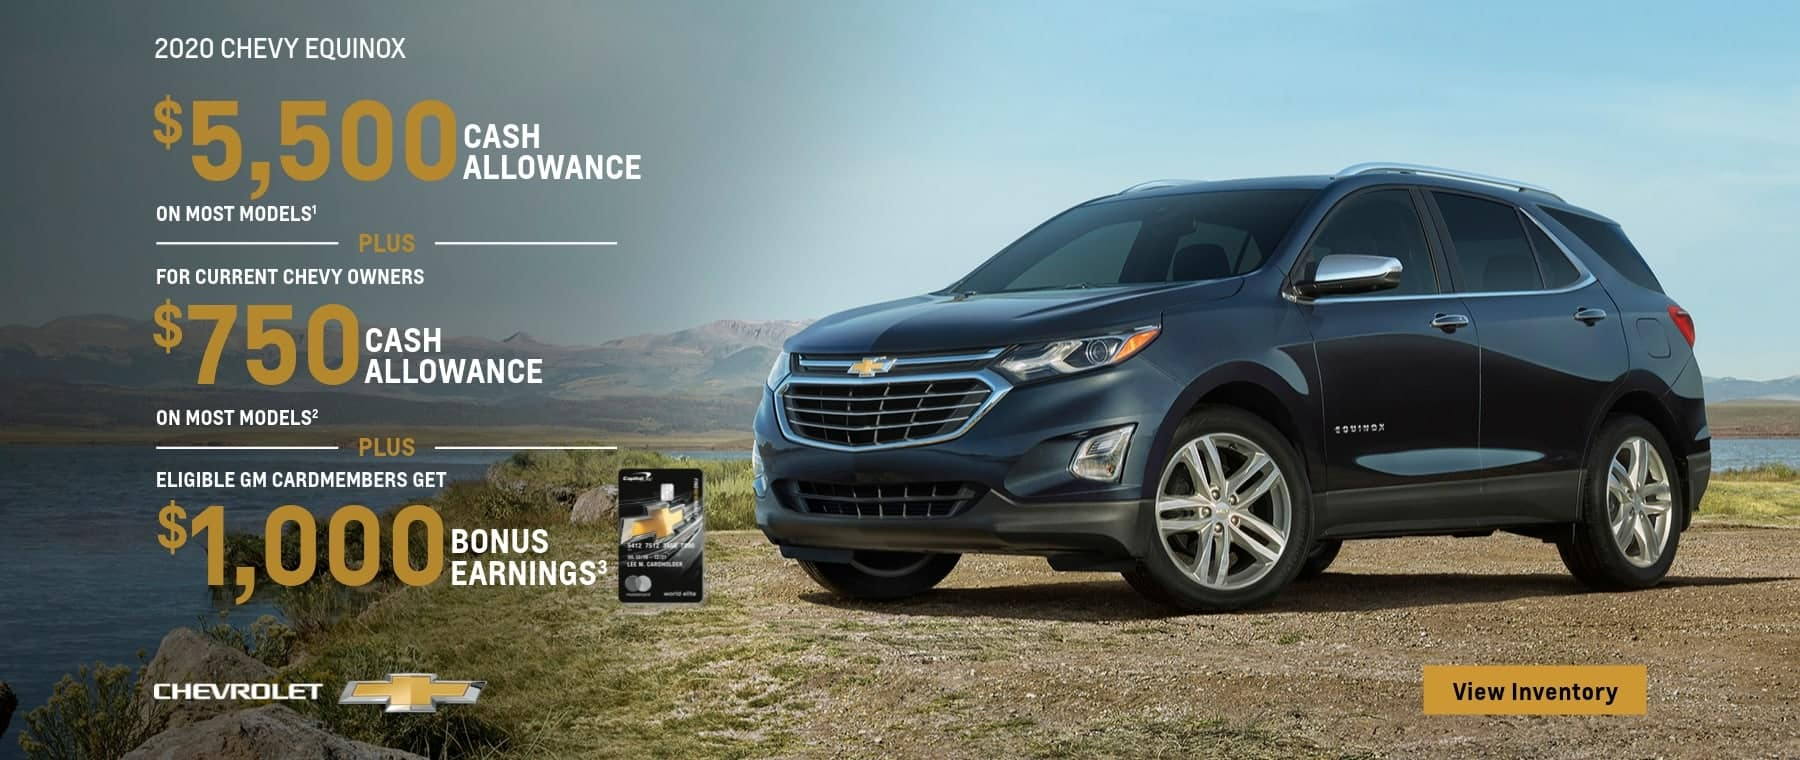 2020 Chevy Equinox $5,500 Cash Allowance on most models plus for current Chevy owners $750 cash allowance on most models. Plus eligible GM card members get $1,000 GM Card bonus earnings.